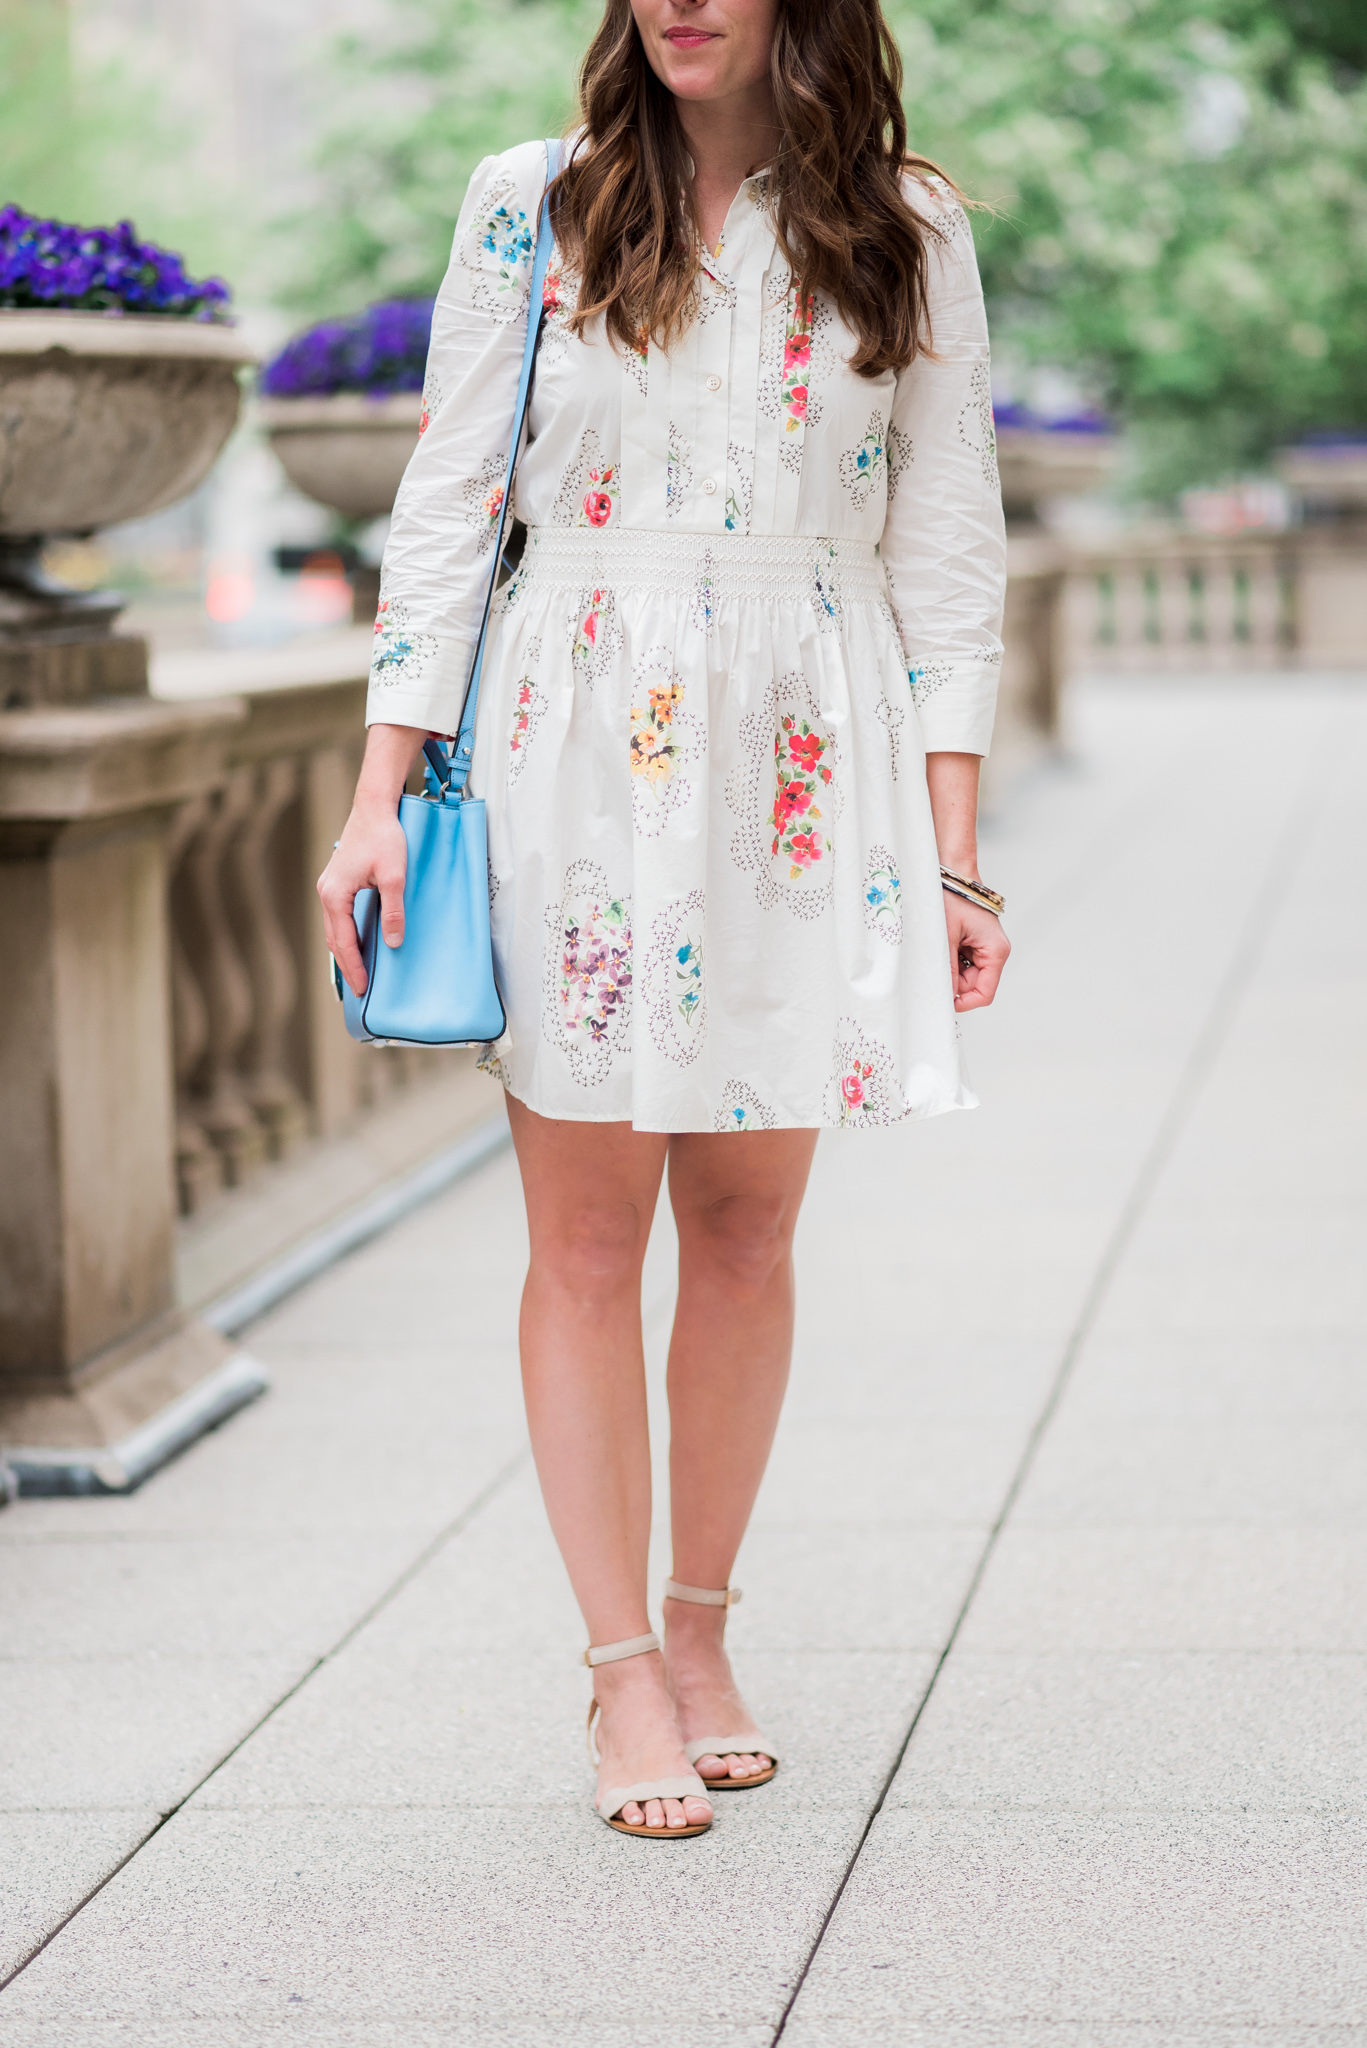 Red Valentino dress on Michigan Avenue